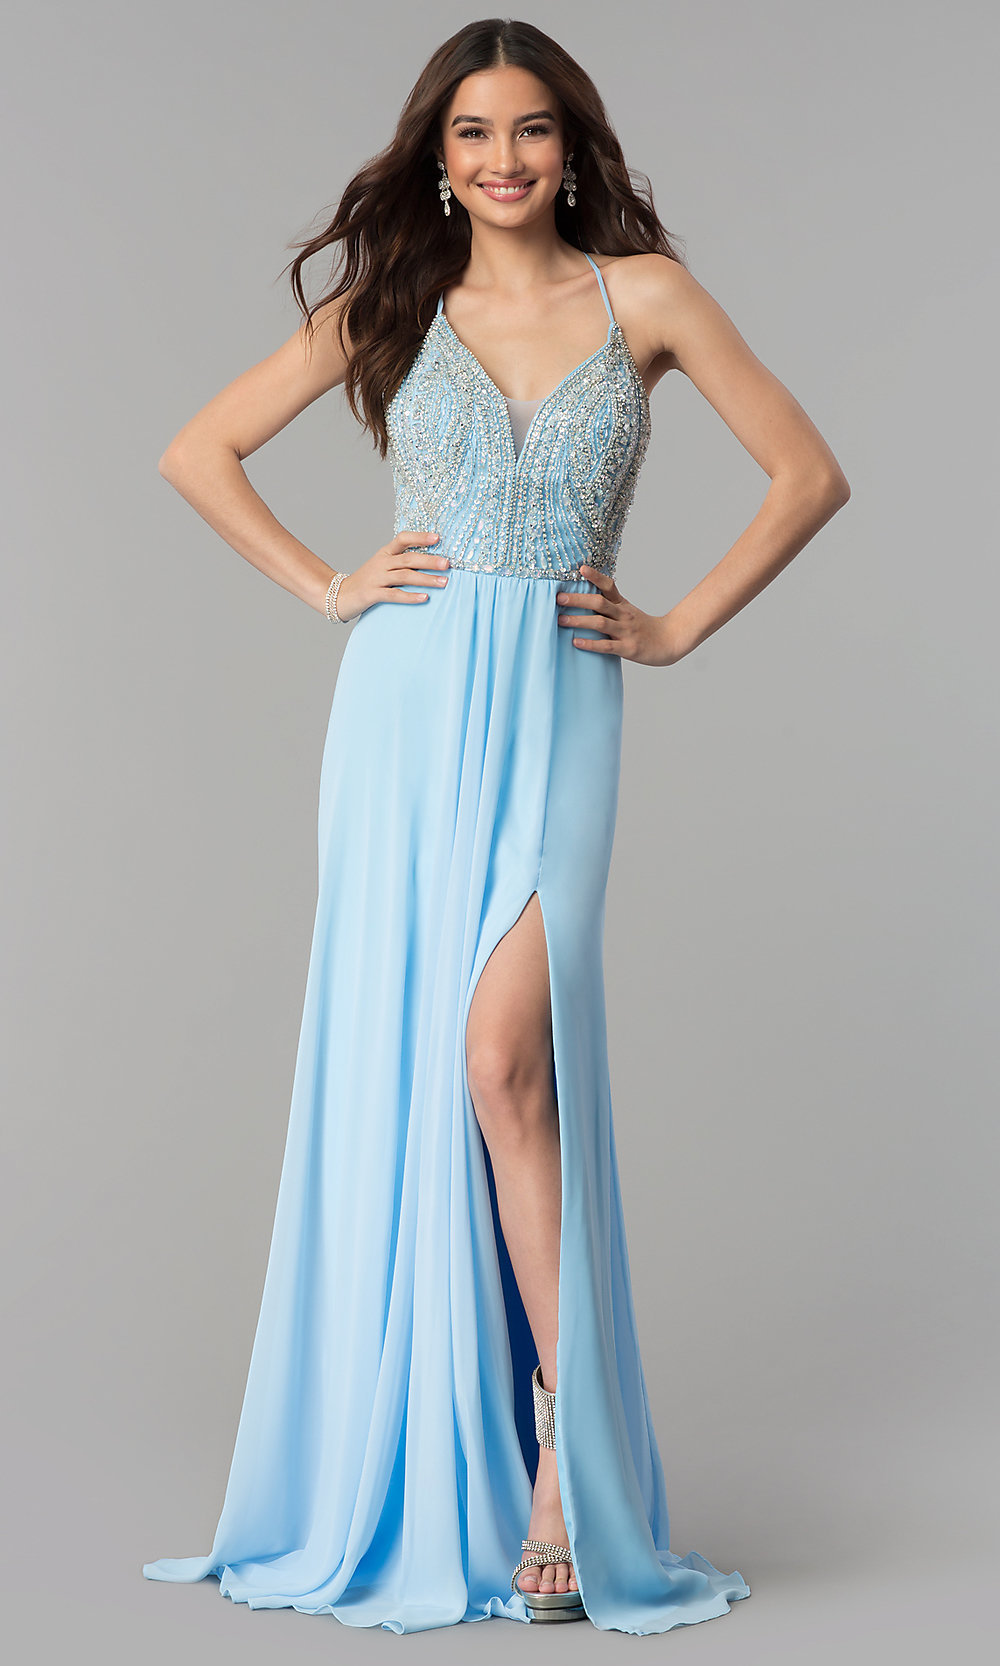 Homecoming Dresses, Formal Prom Dresses, Evening Wear: FA-S10041